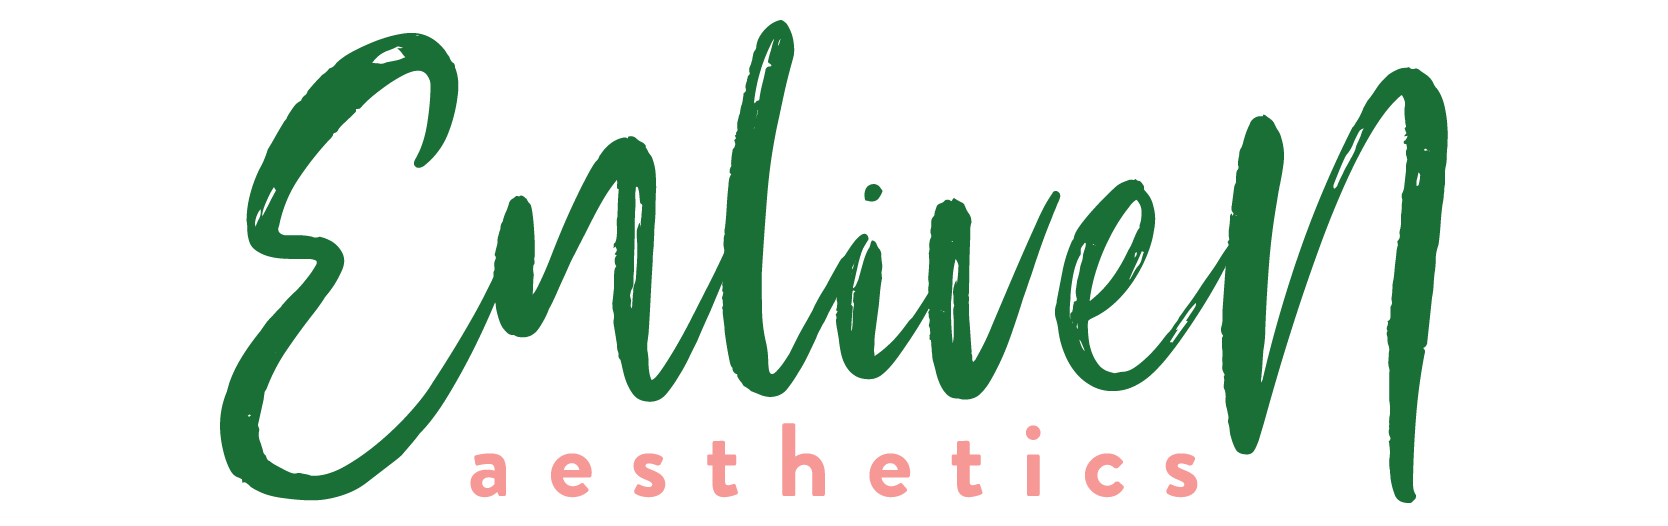 Enliven Aesthetics | Dermal Fillers Specialists in San Diego | Botox, Dysport, Sculptra, Galderma…